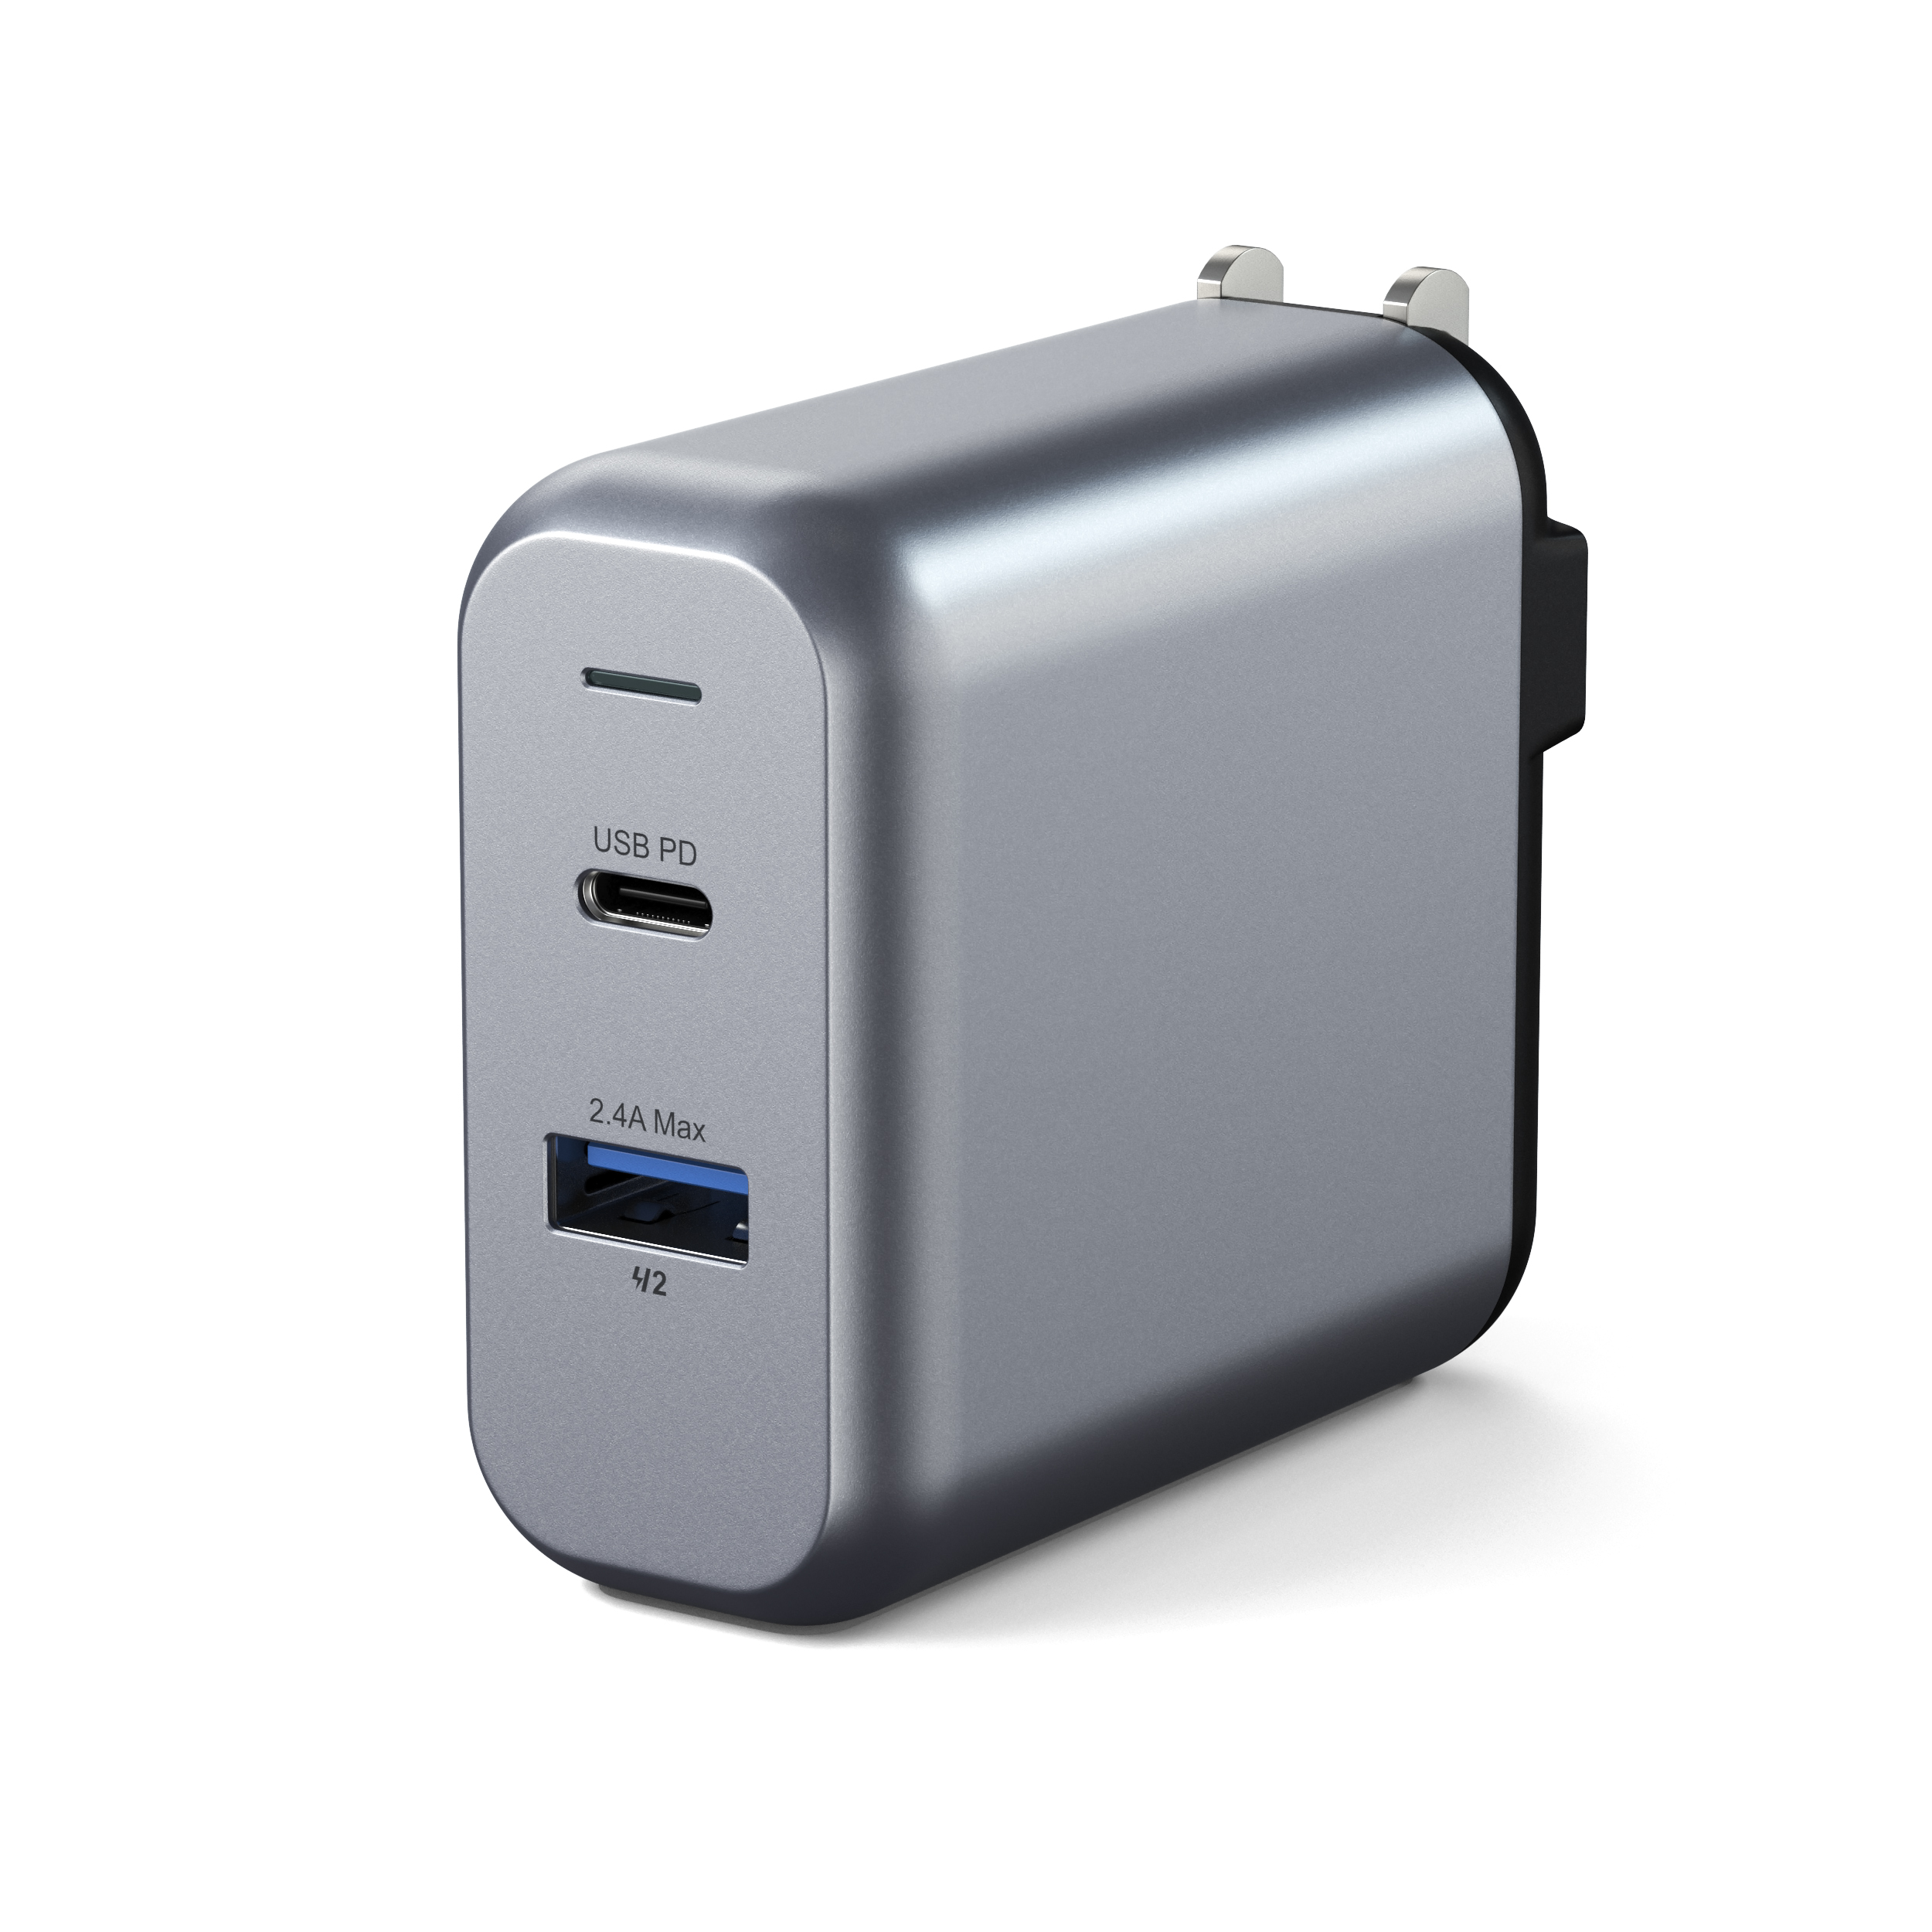 USA Compatible with 2018 MacBook Air iPhone Xs Max//XS//XR and More Satechi 75W Dual Type-C PD Travel Charger Adapter with 2 USB-C PD /& 2 USB 3.0 2018 iPad Pro 2018 MacBook Pro